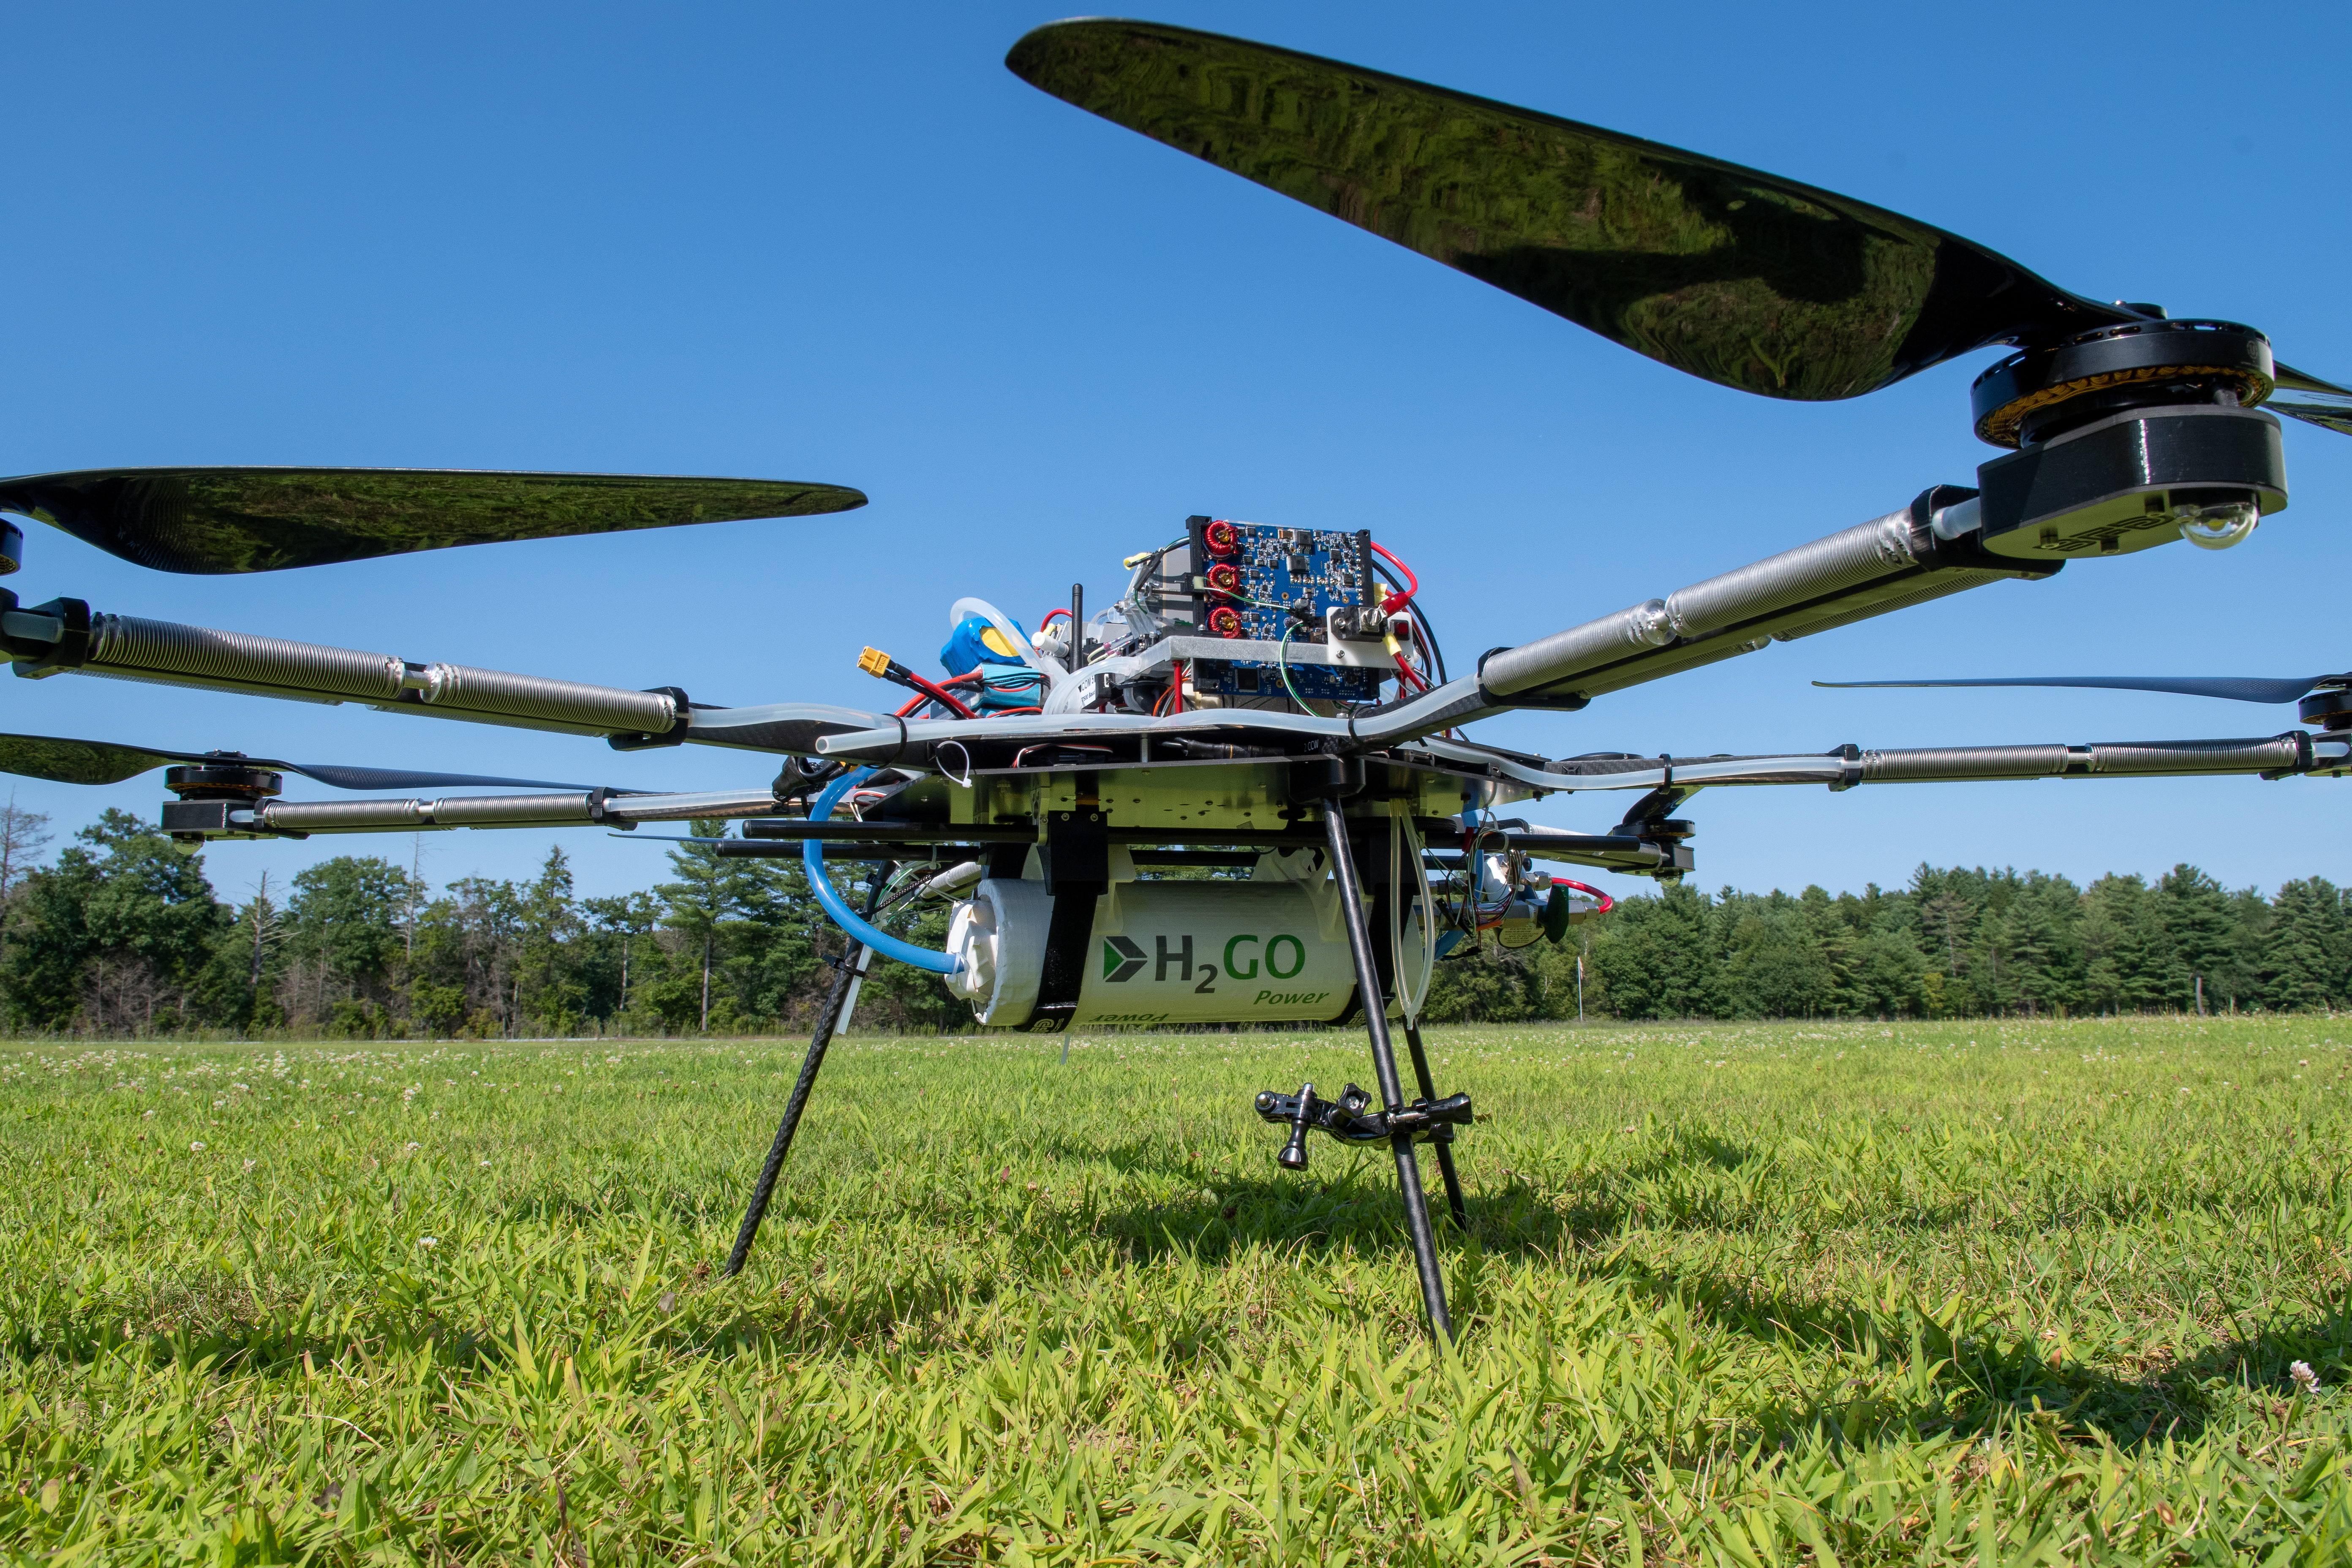 Drone on ground with hydrogen tank and wiring exposed